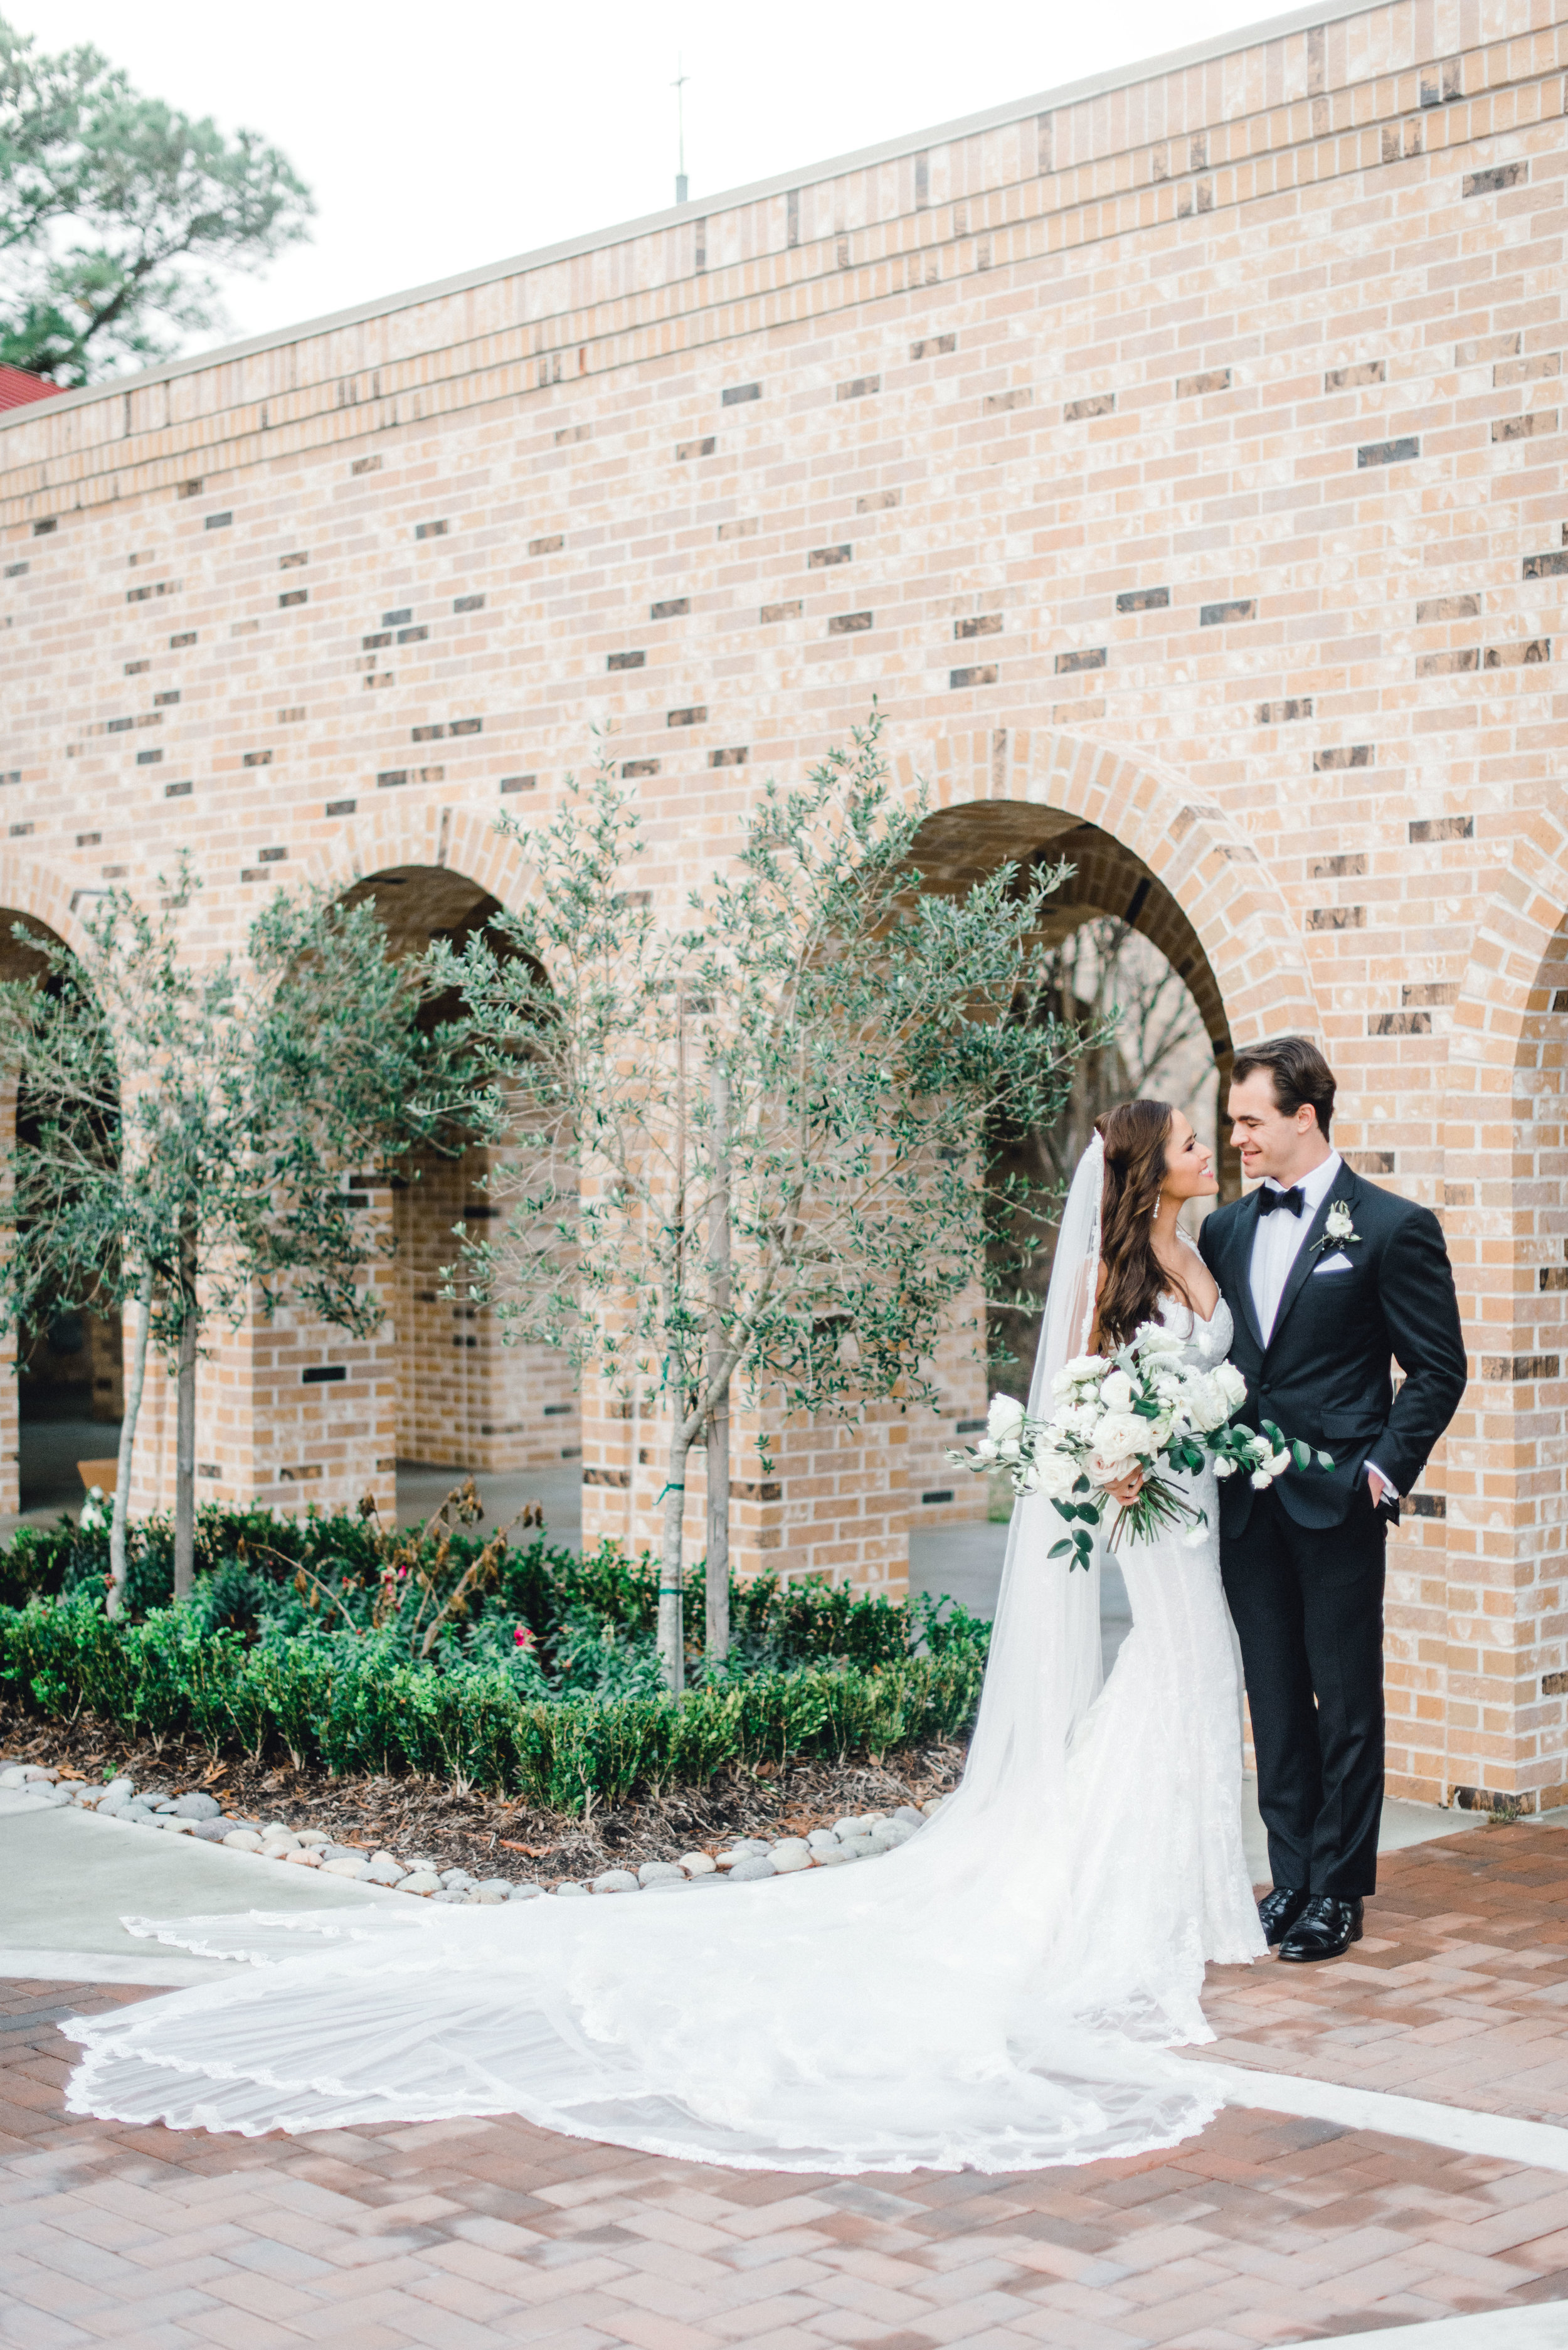 wedding-details-photography-dana-fernandez-bride-groom-married-love-boutonniere-bridal-bouquet-Freesia-Lisianthus-Veronica-peony-floral-greenery-by-maxit-flower-design-houston-texas